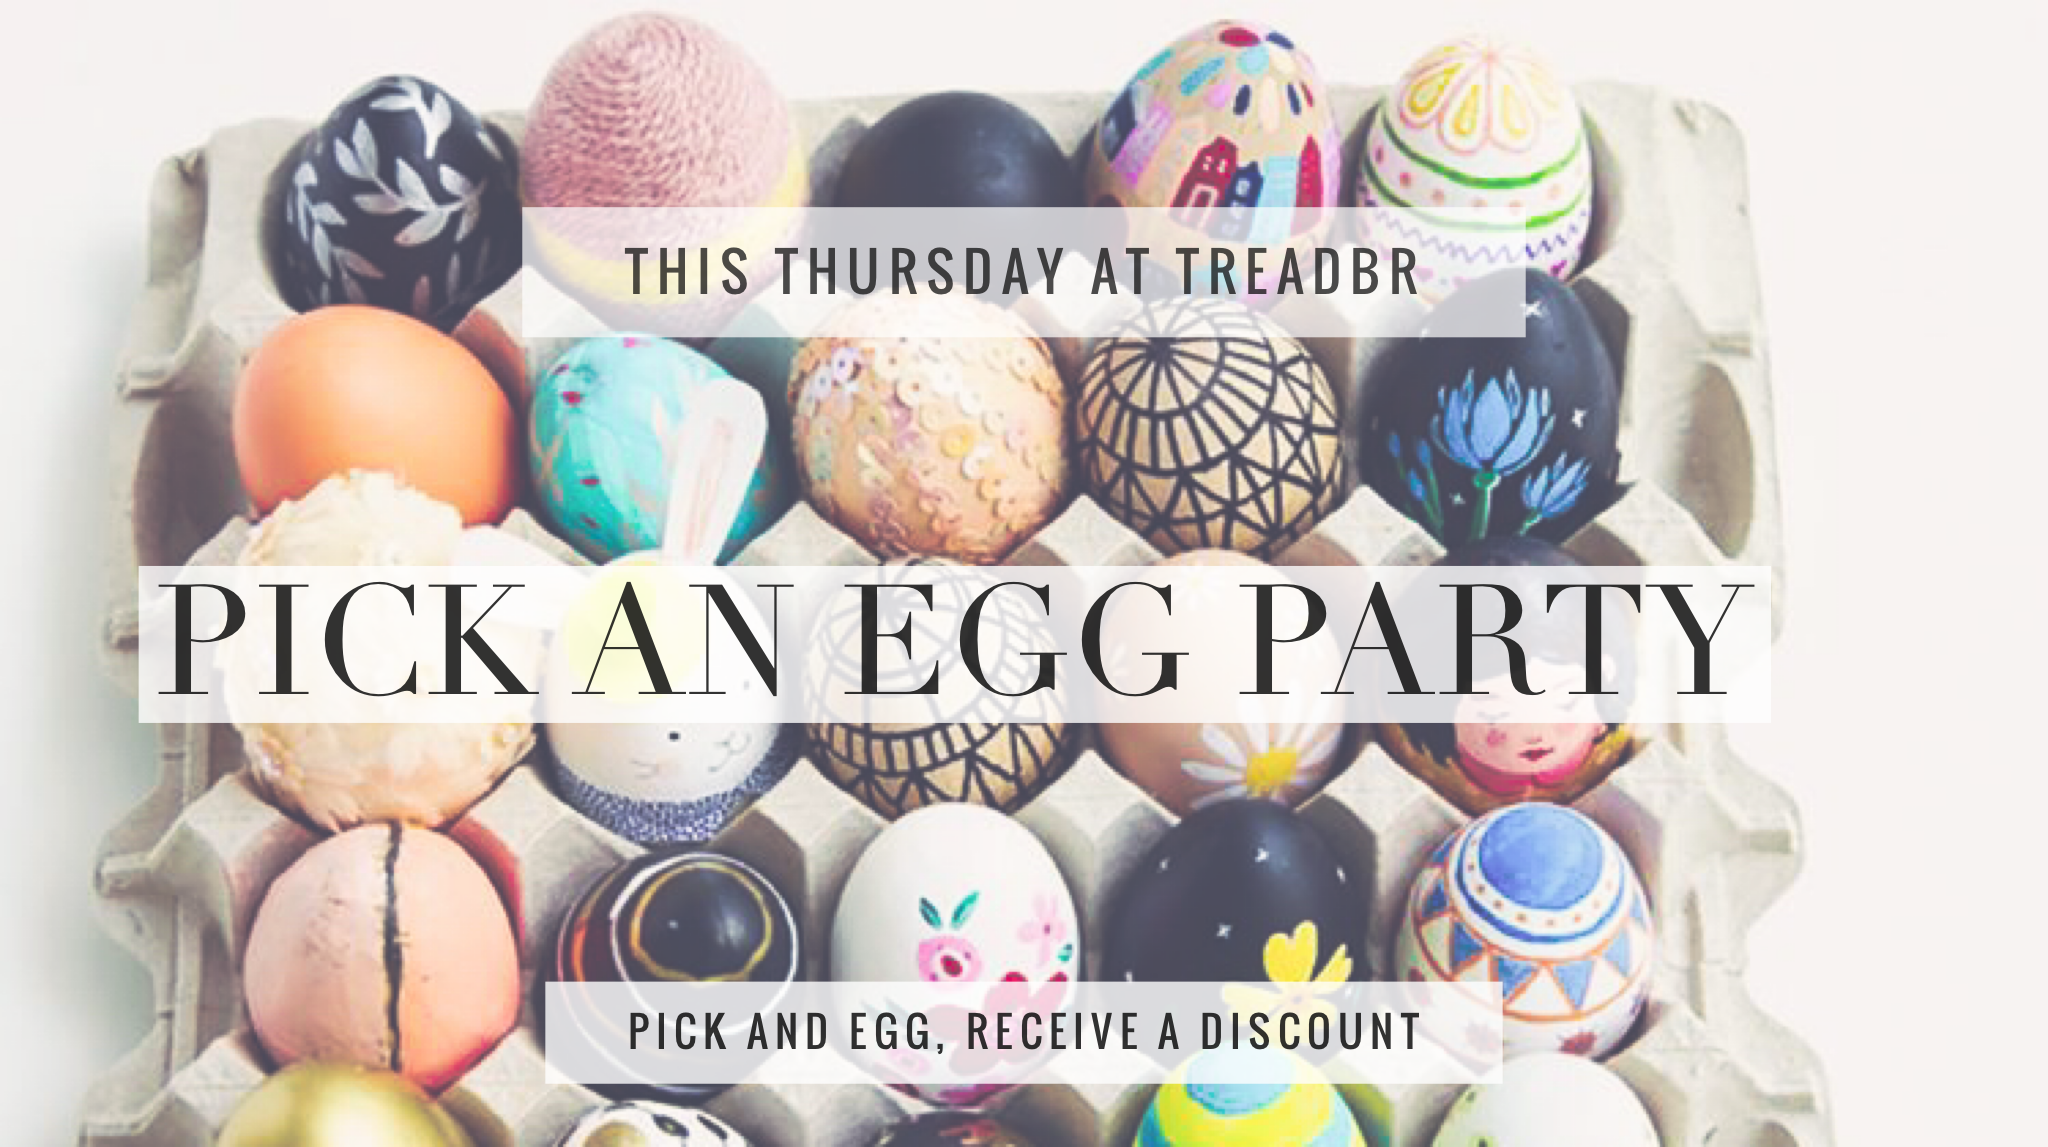 Easter egg hunt, but make it TREAD!!! Join us this Thursday for our Pick an Egg PARTY to fill your easter basket with Tread discounts!